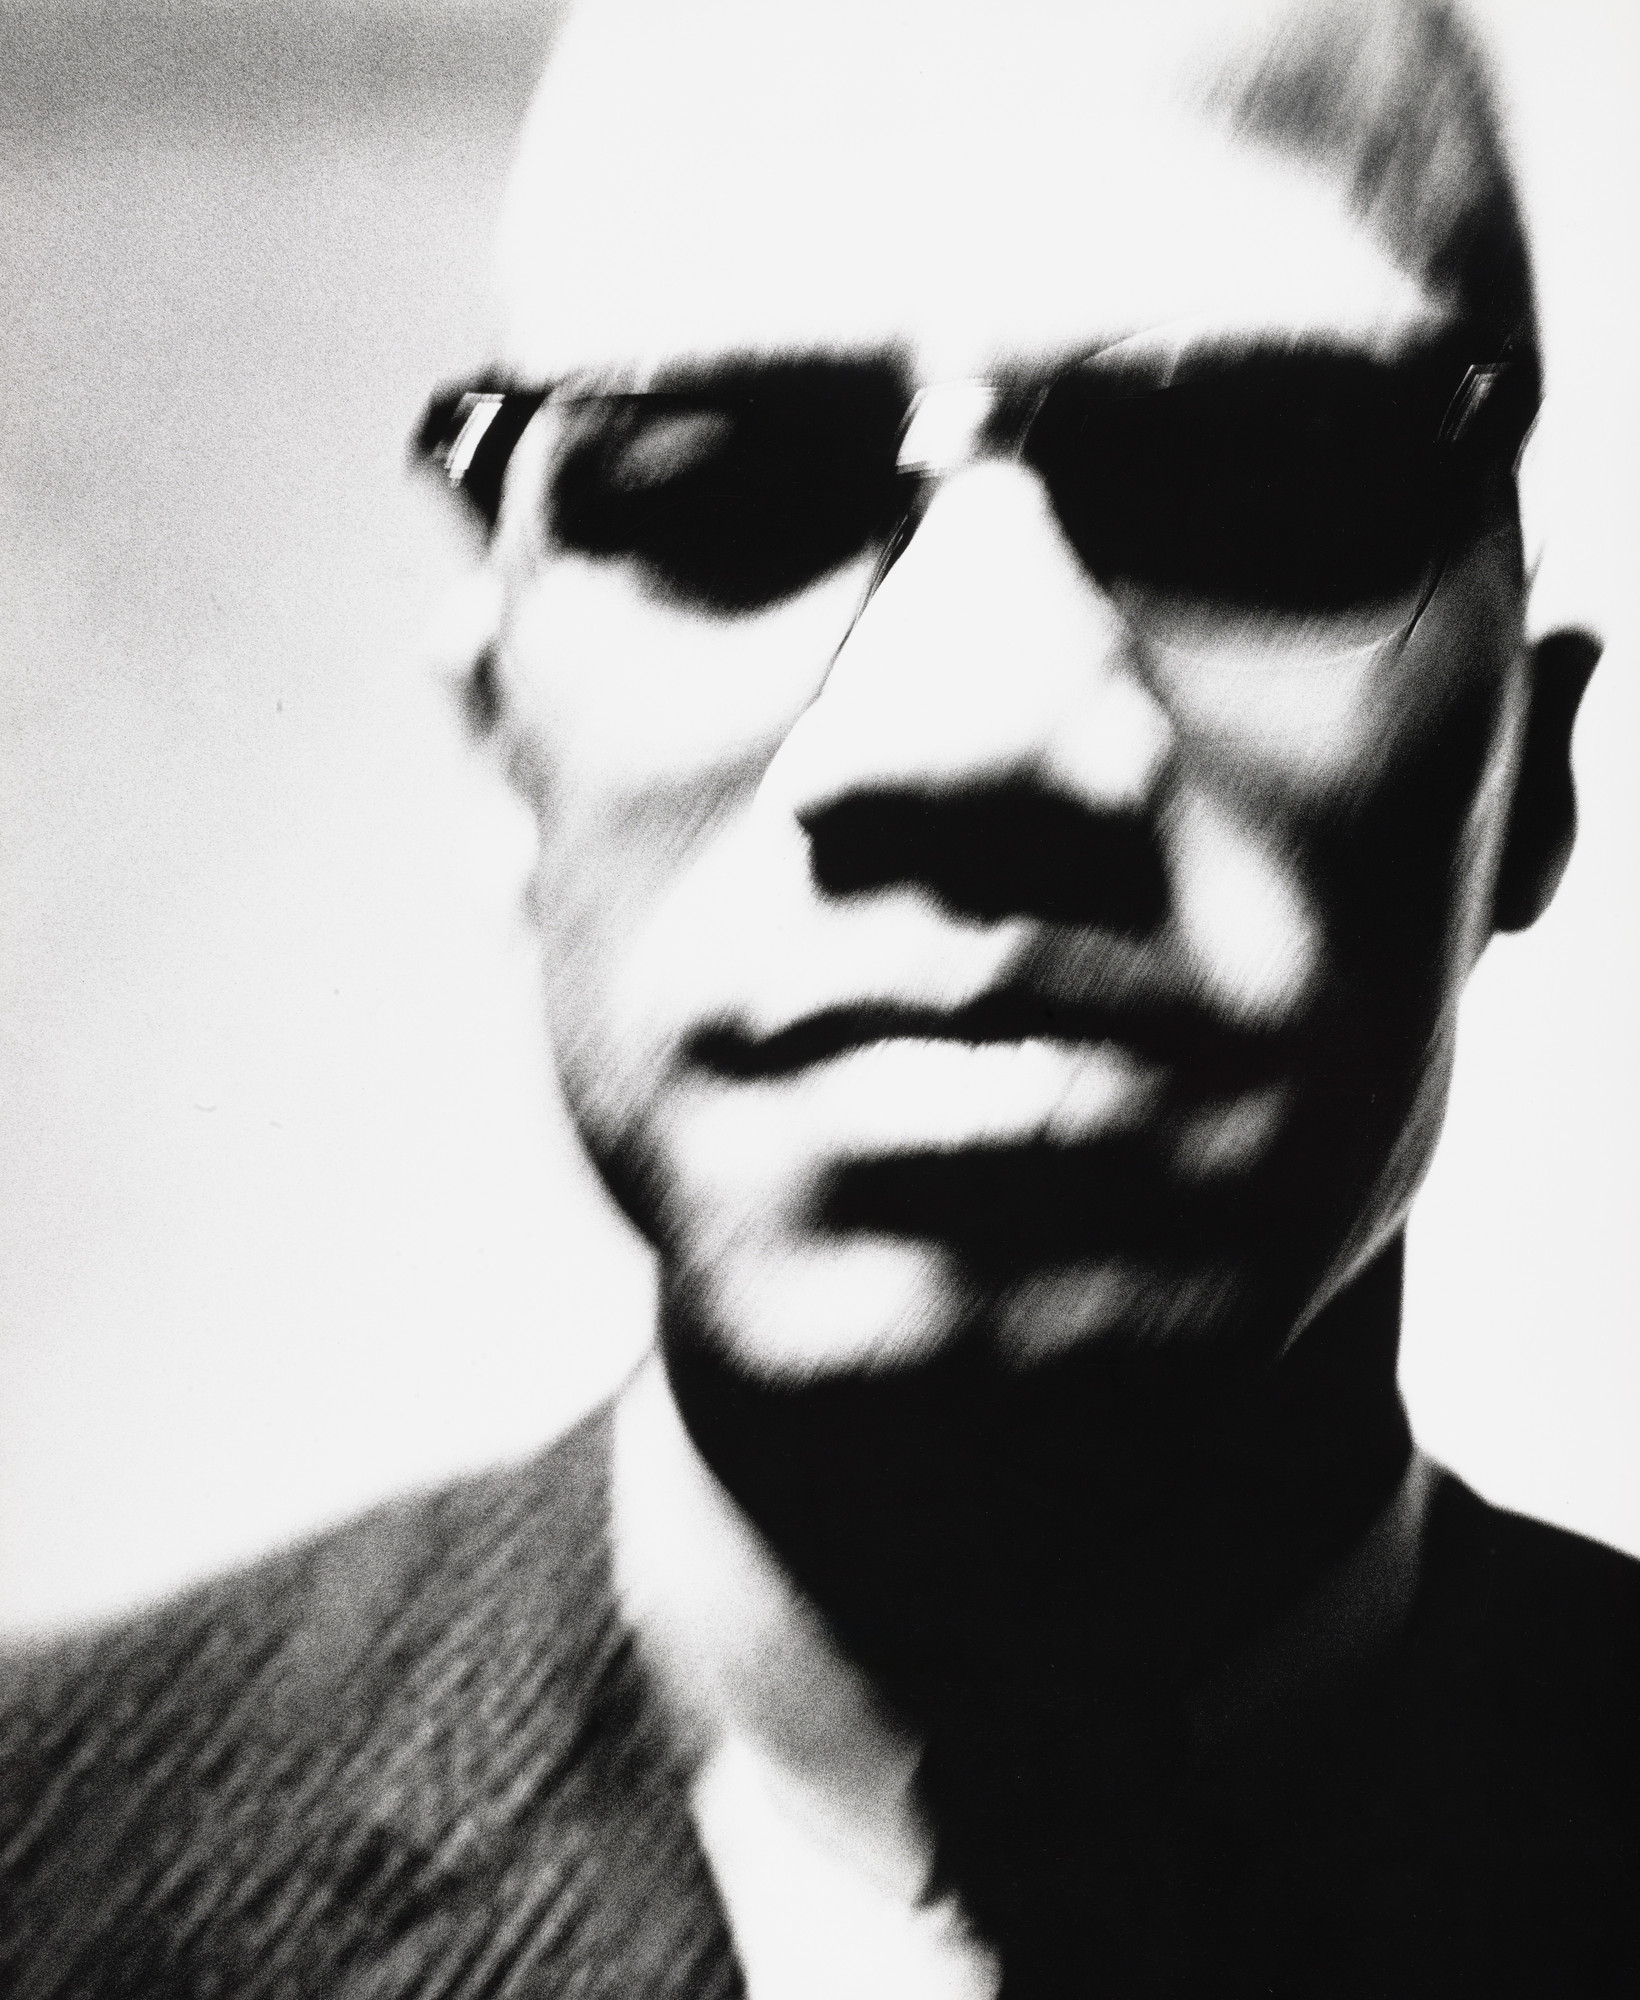 Richard Avedon. Malcolm X, Black Nationalist leader, New York. March 27, 1963